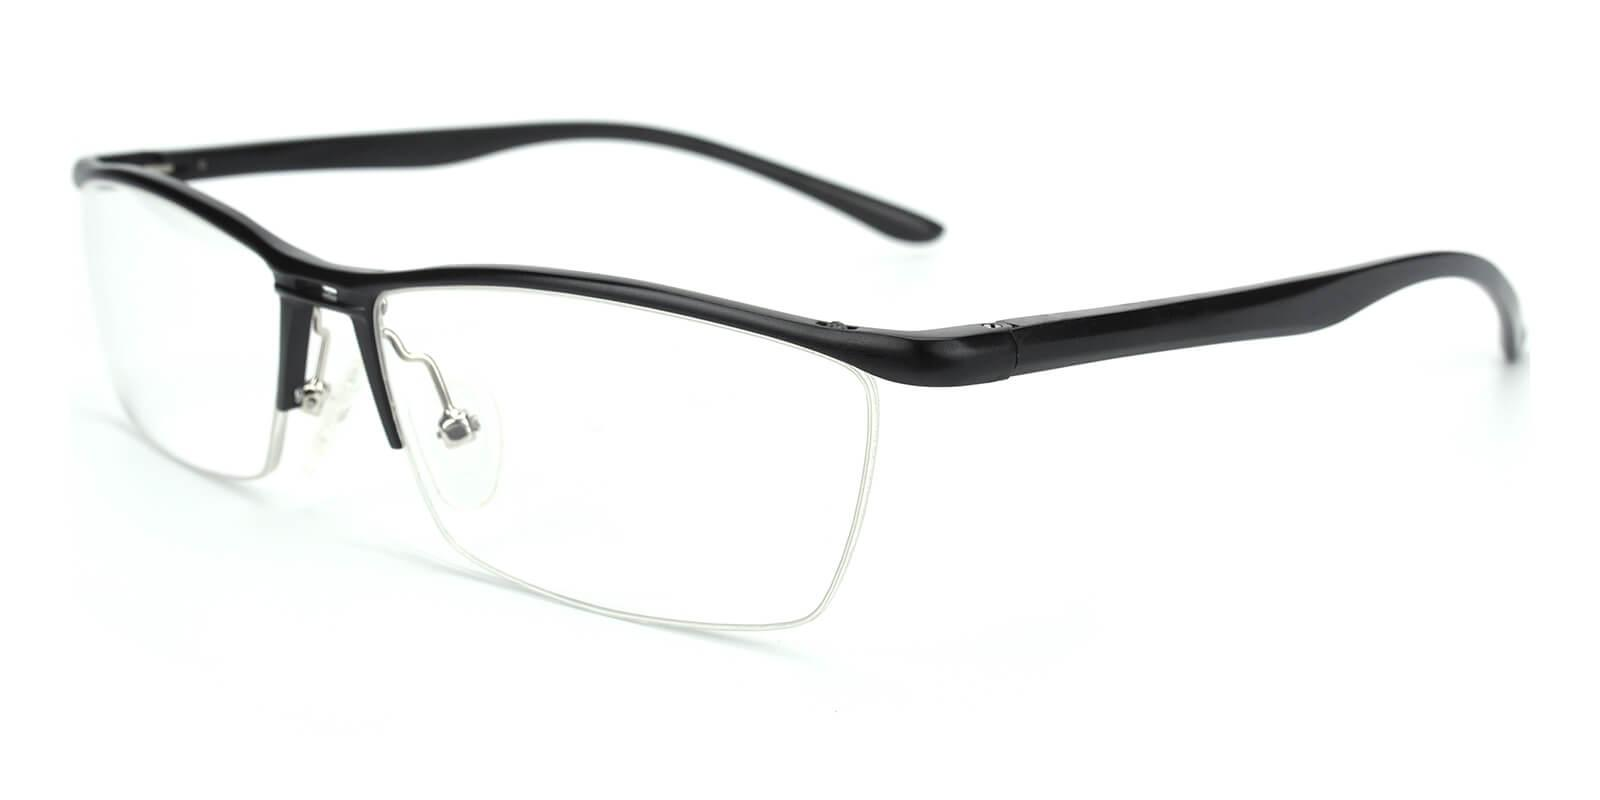 Vauseper-Black-Rectangle-Metal-Eyeglasses-additional1